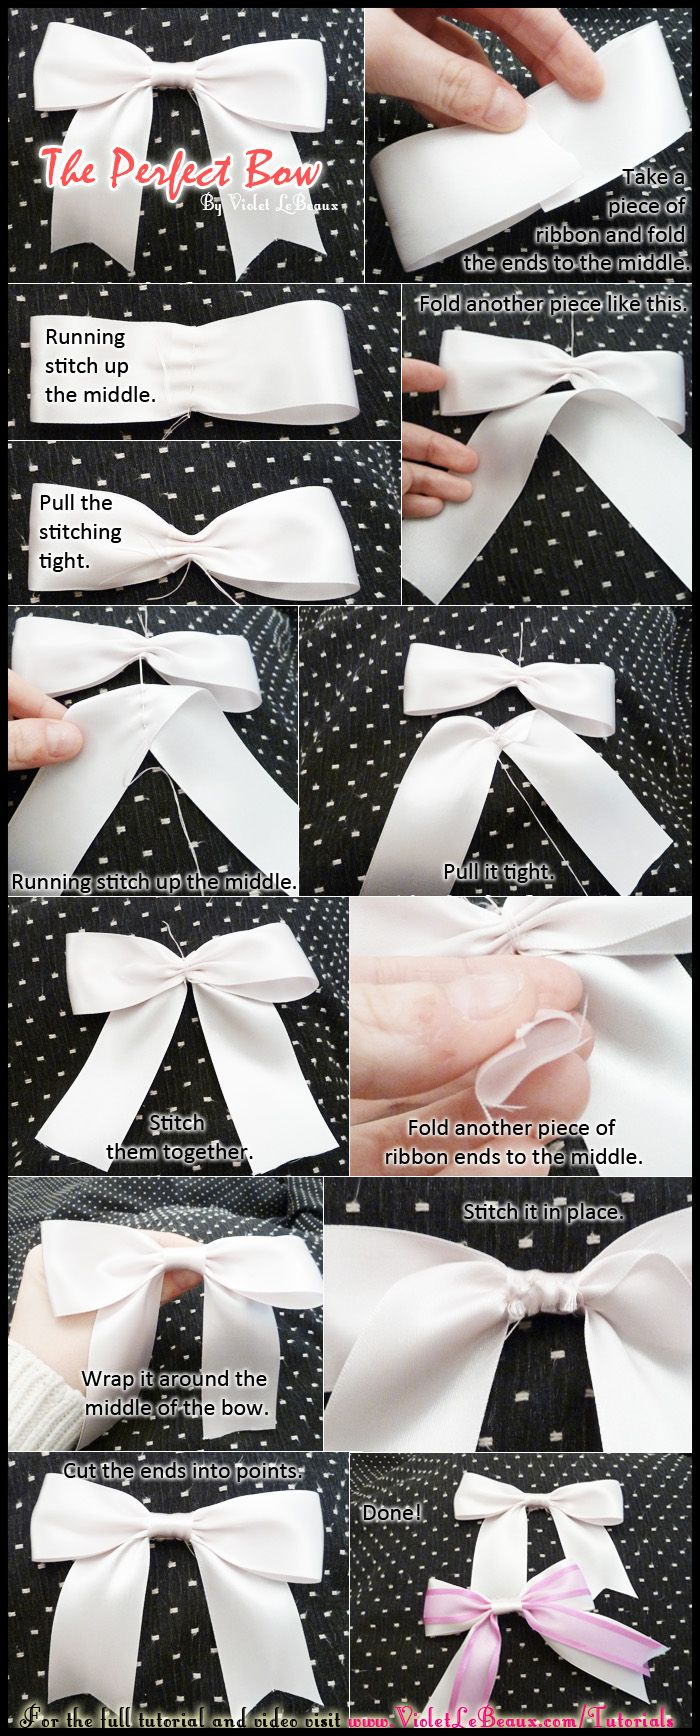 Simple tutorial on getting the perfect ribbon bow every time.   Original full tutorial over here: www.violetlebeaux...